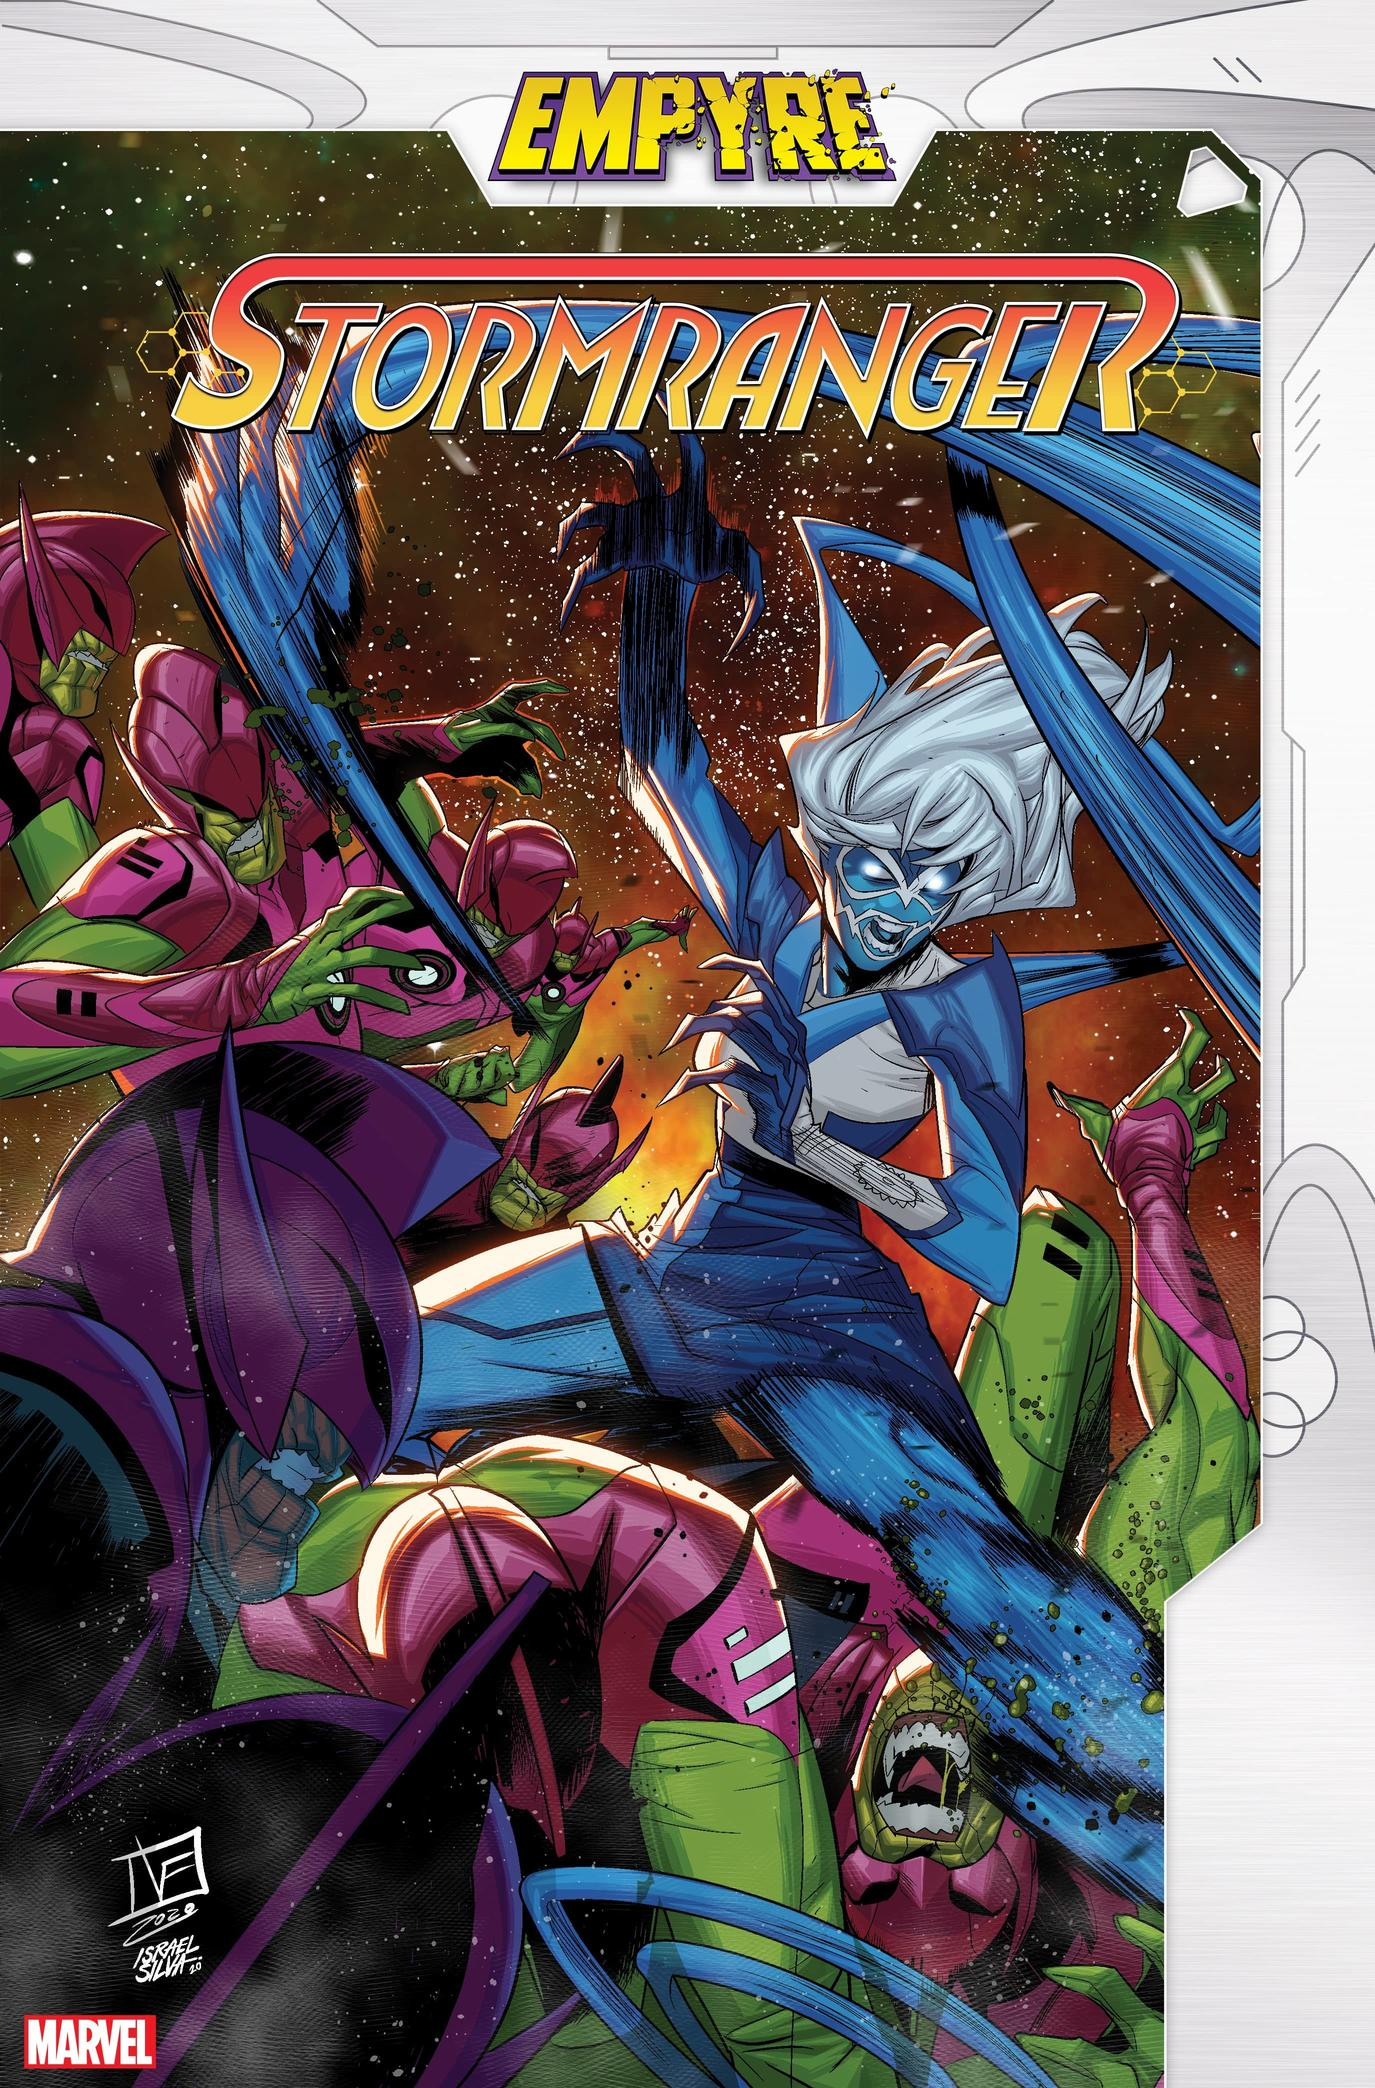 Empyre: Stormranger #1 (of 3) written by SALADIN AHMED with Art by STEVEN CUMMINGS and cover by FEDERICO VICENTINI